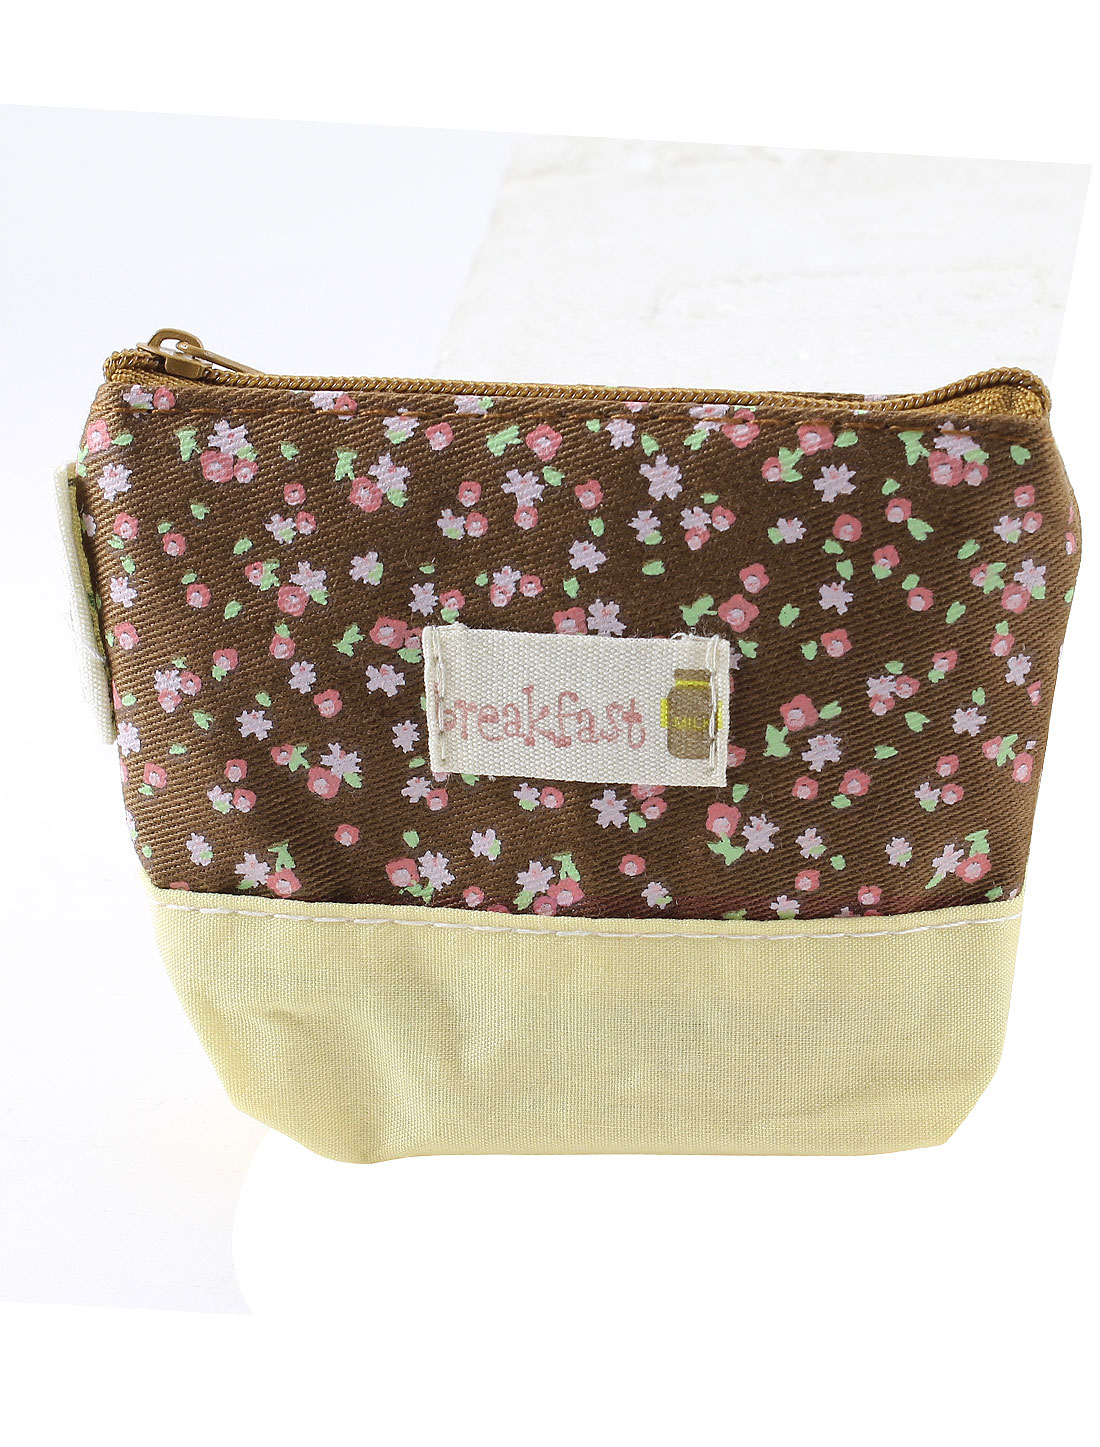 Flowers Pattern Zip Up Cash Coin Money Key Credit Card Purse Bag Beige Chocolate Color for Lady